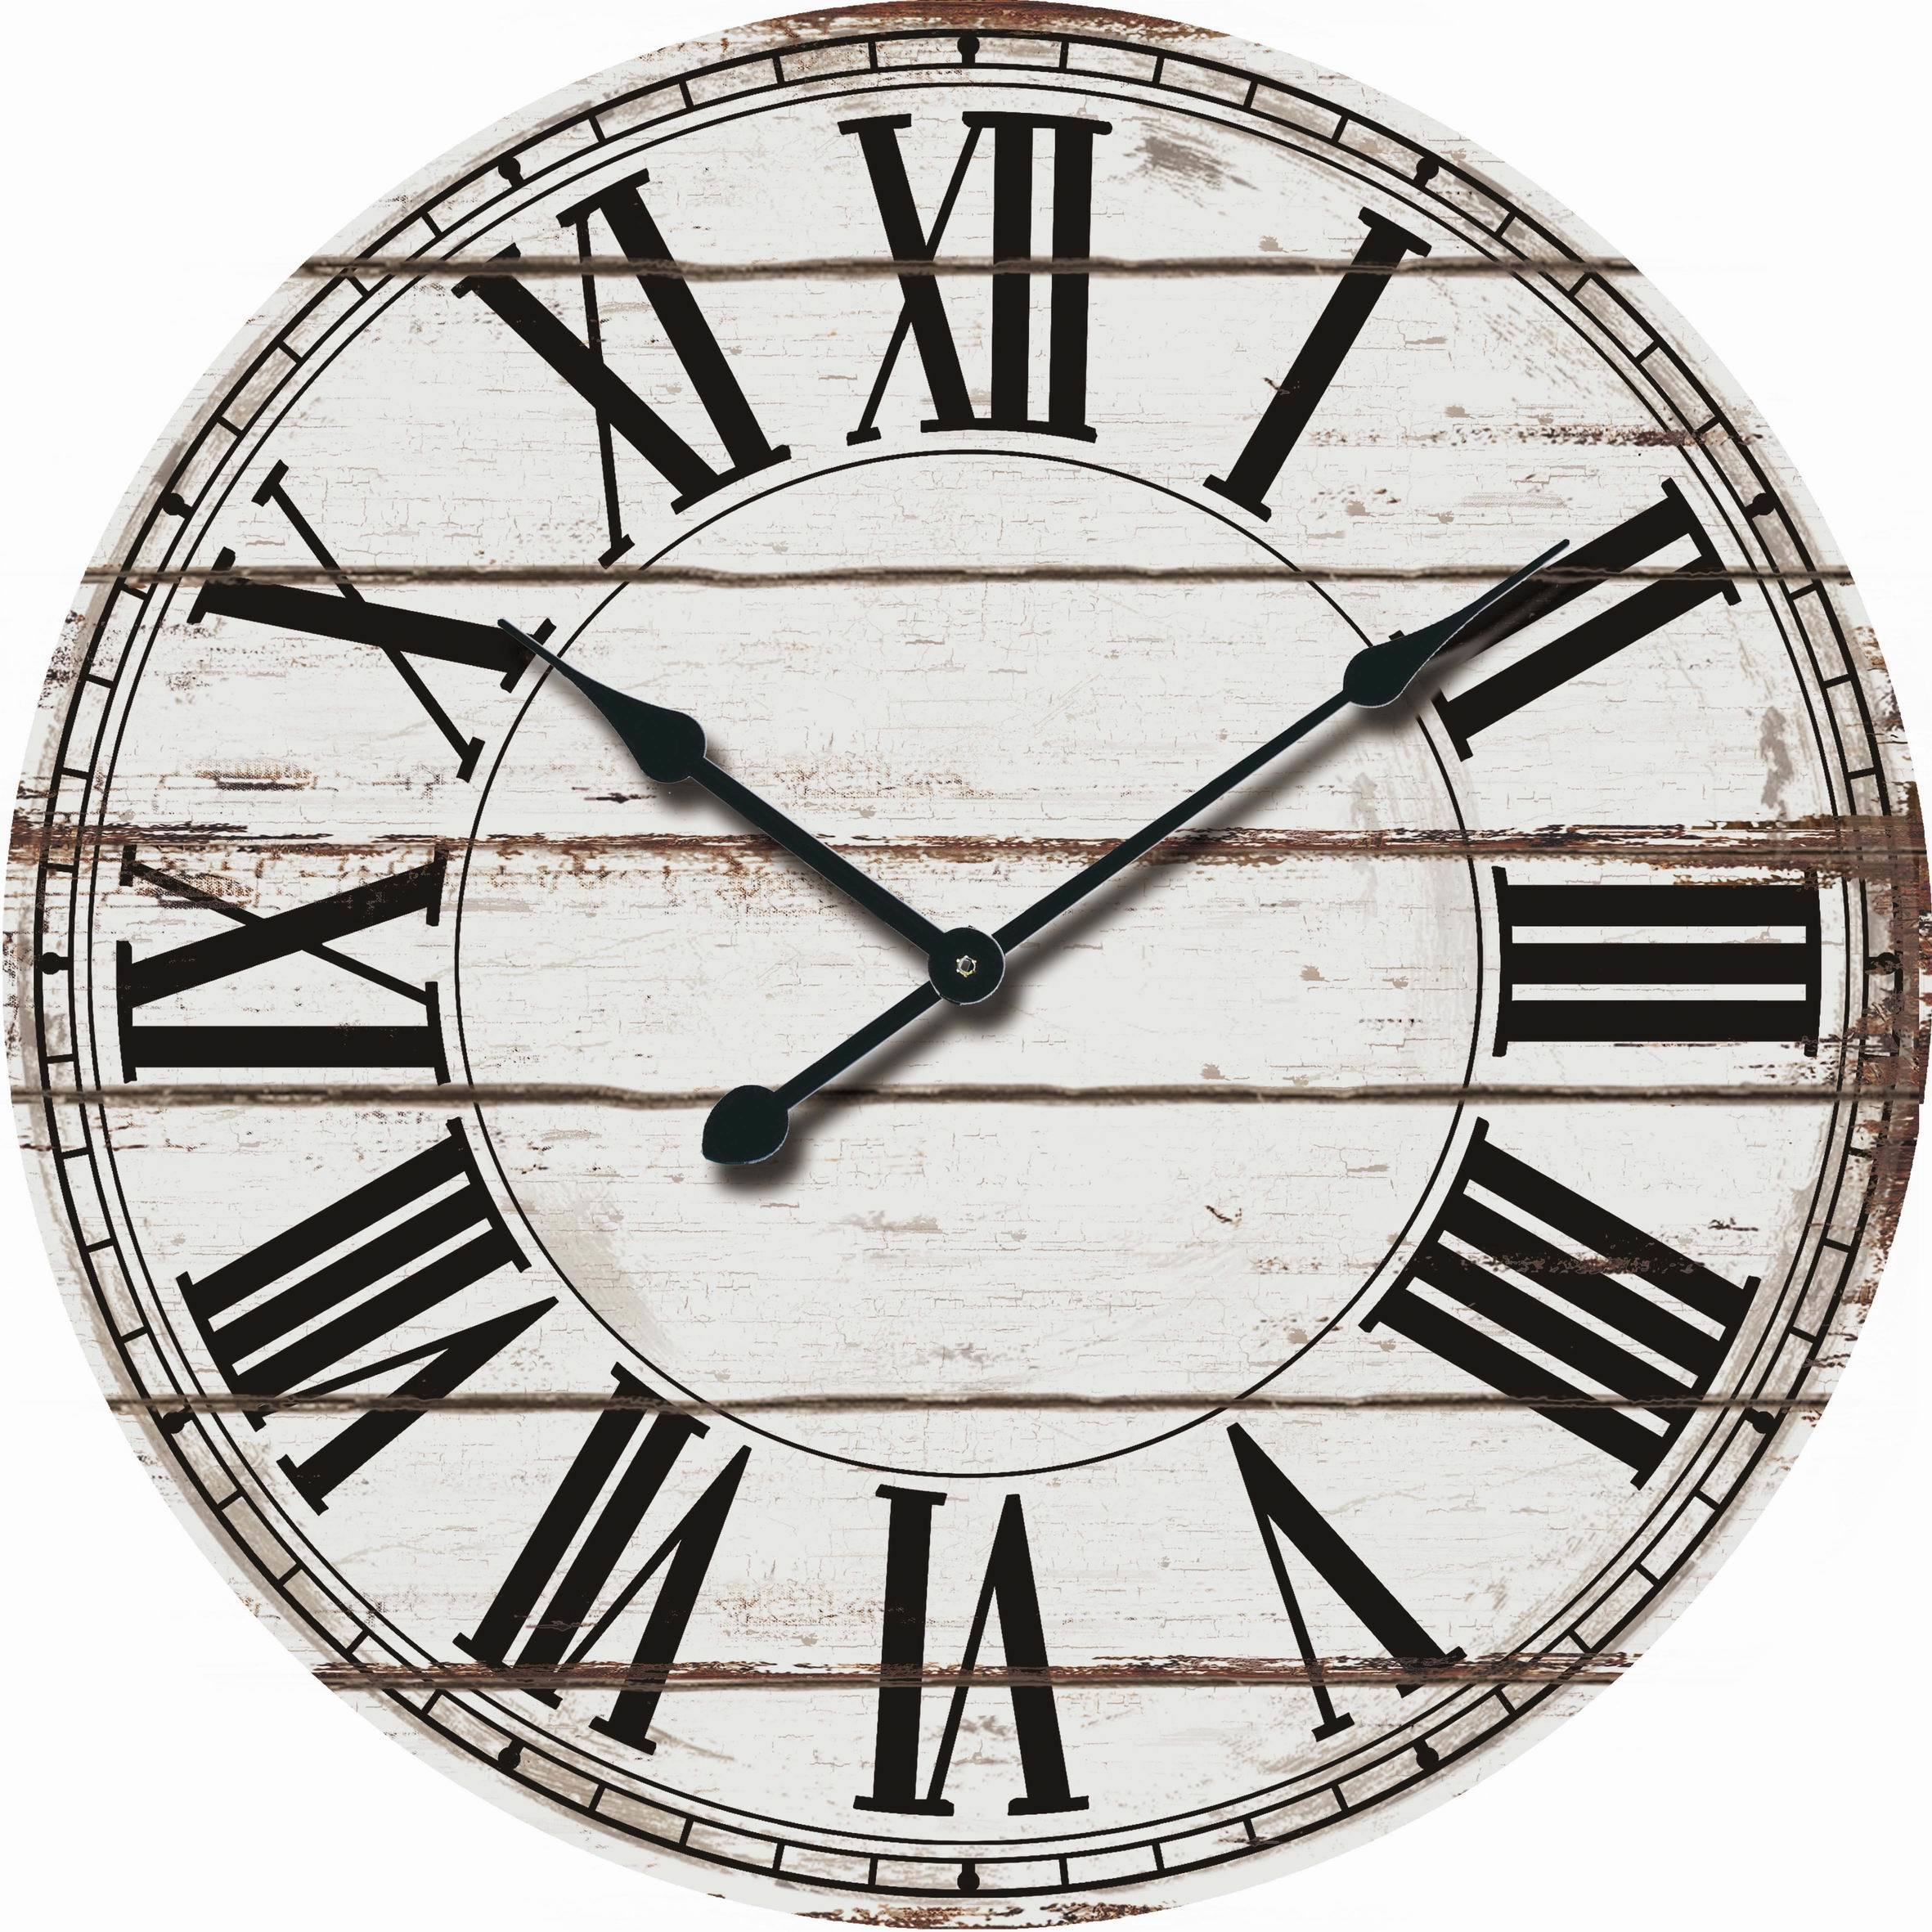 Details Oversized Wall Clock Rustic